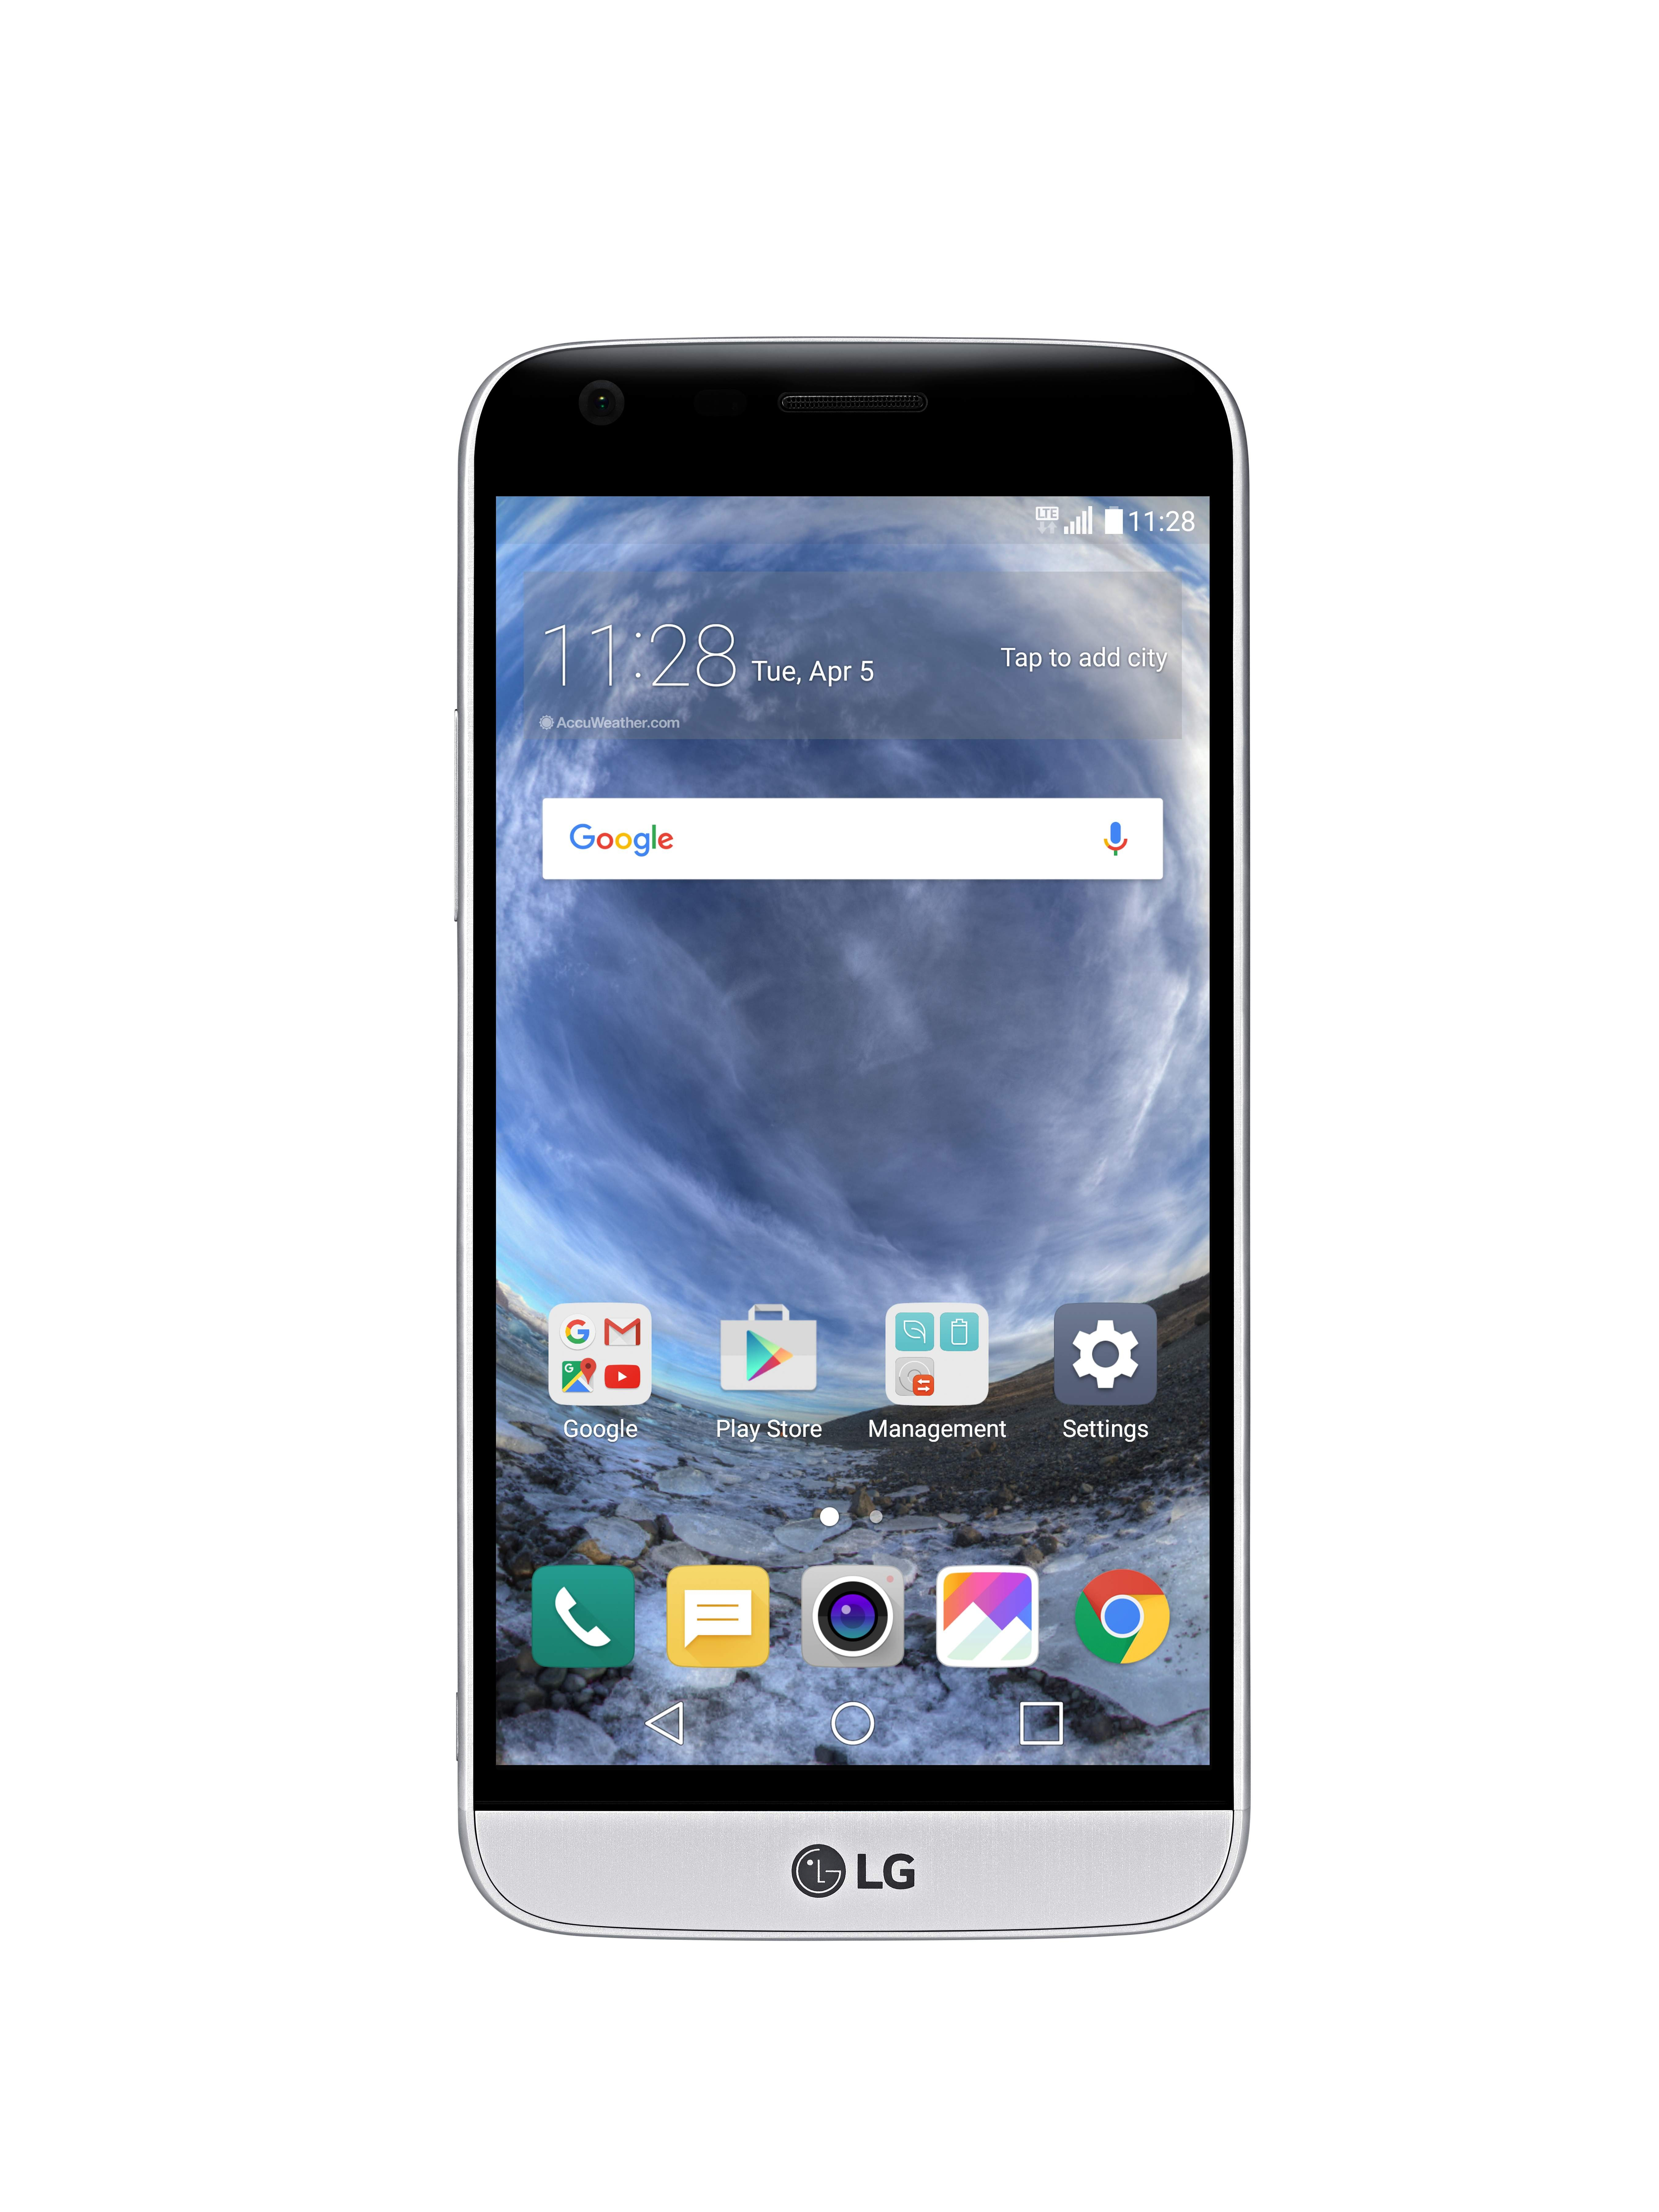 wallpaper android lg: LG Announces New Line Of 360-Degree Live Wallpapers For LG G5